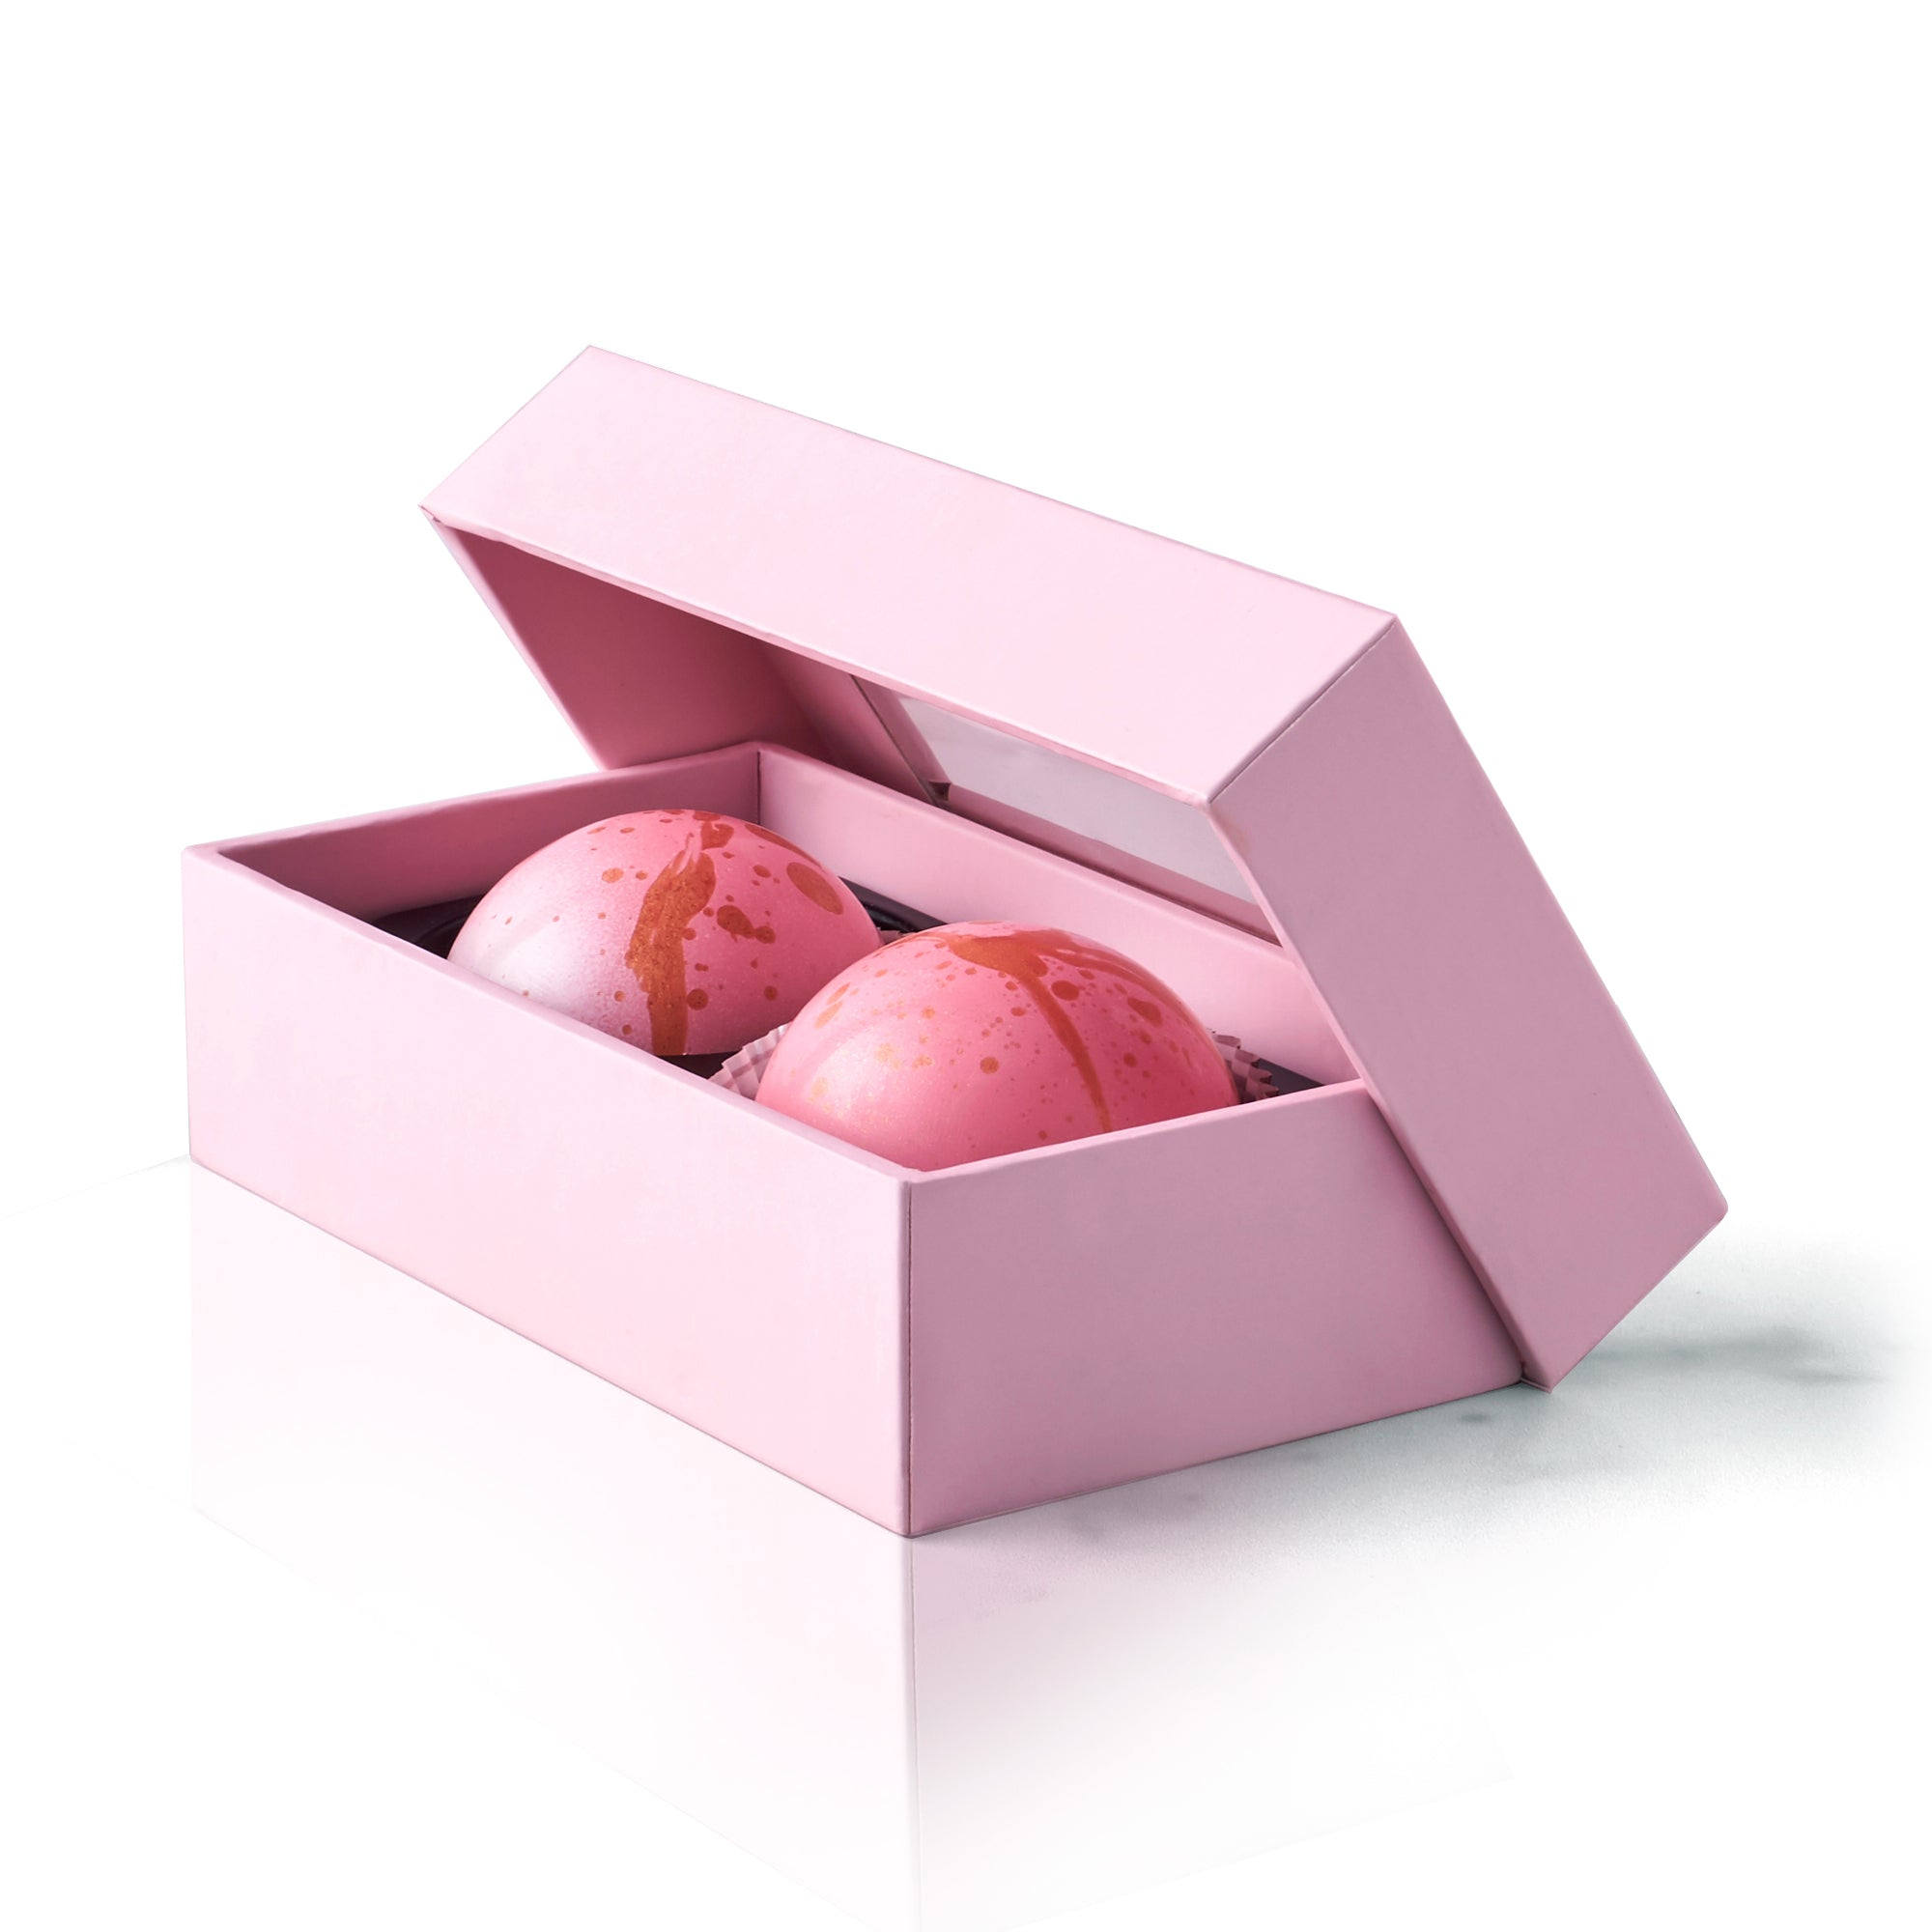 Caramel Crunch Chocolate Truffle Box, 2 pc.